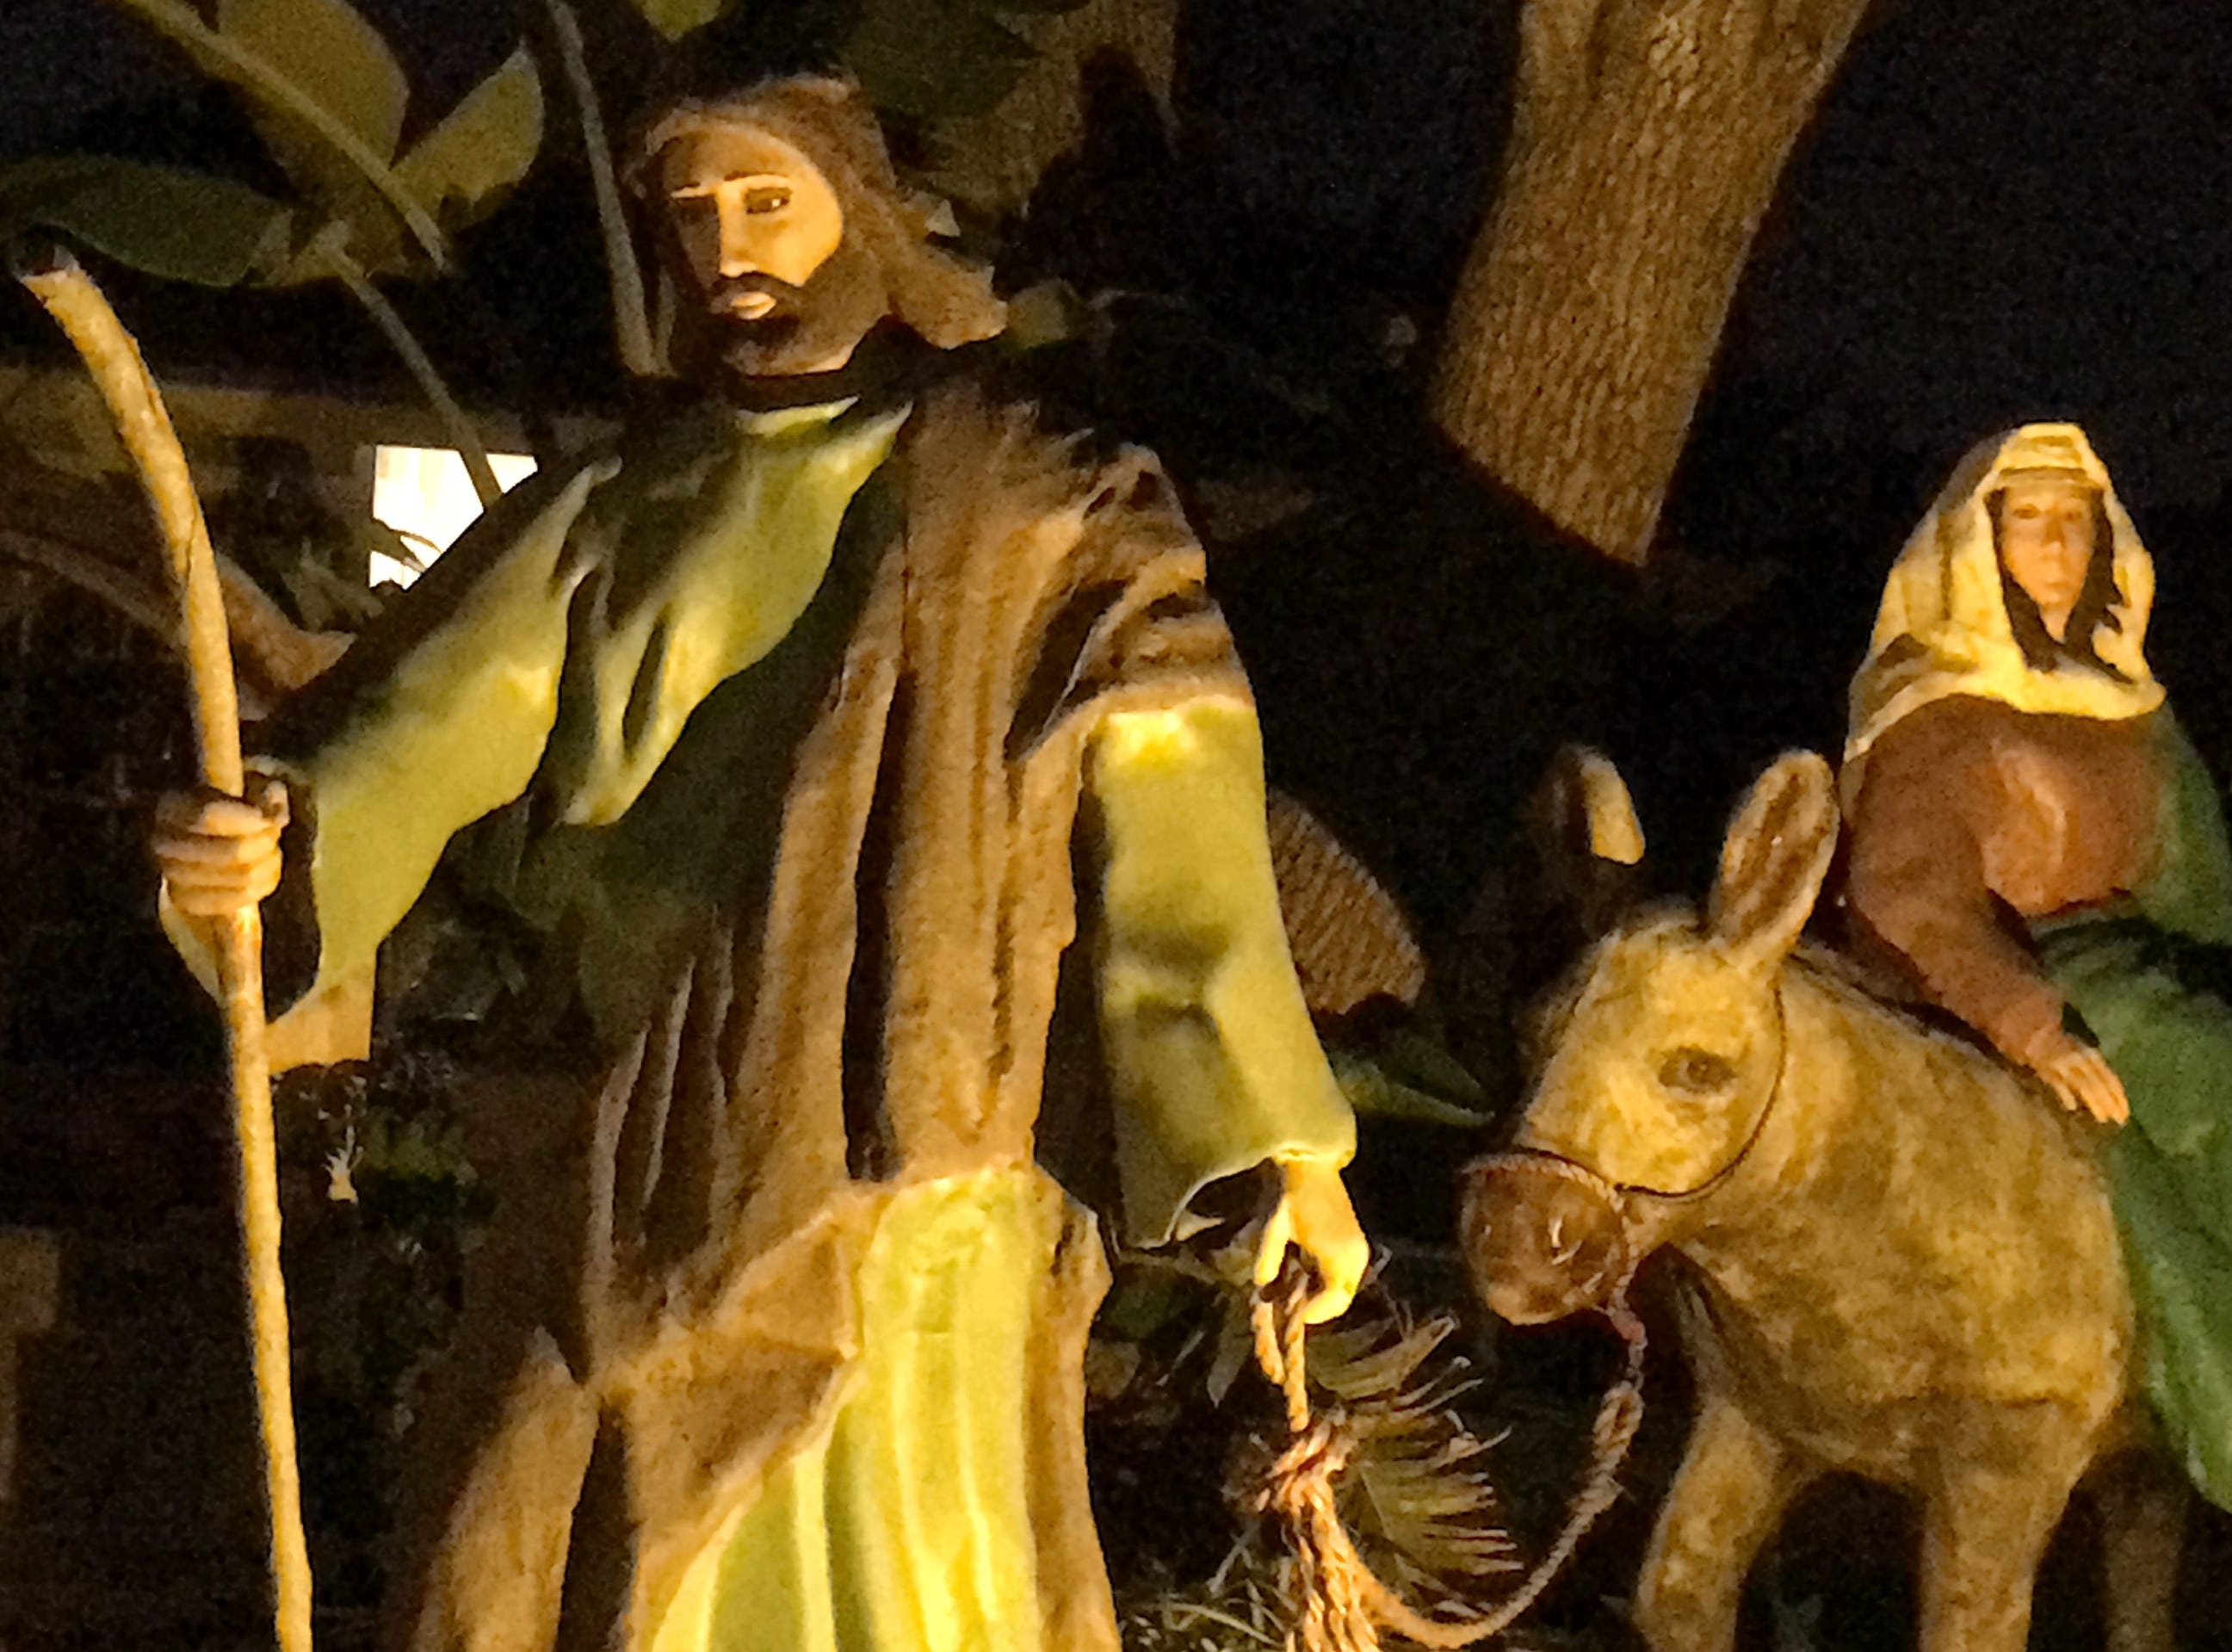 Right across the street of the life-size Nativity scene on 4826 Willowbrook Drive, is a life-size scene of Joseph and Mary.